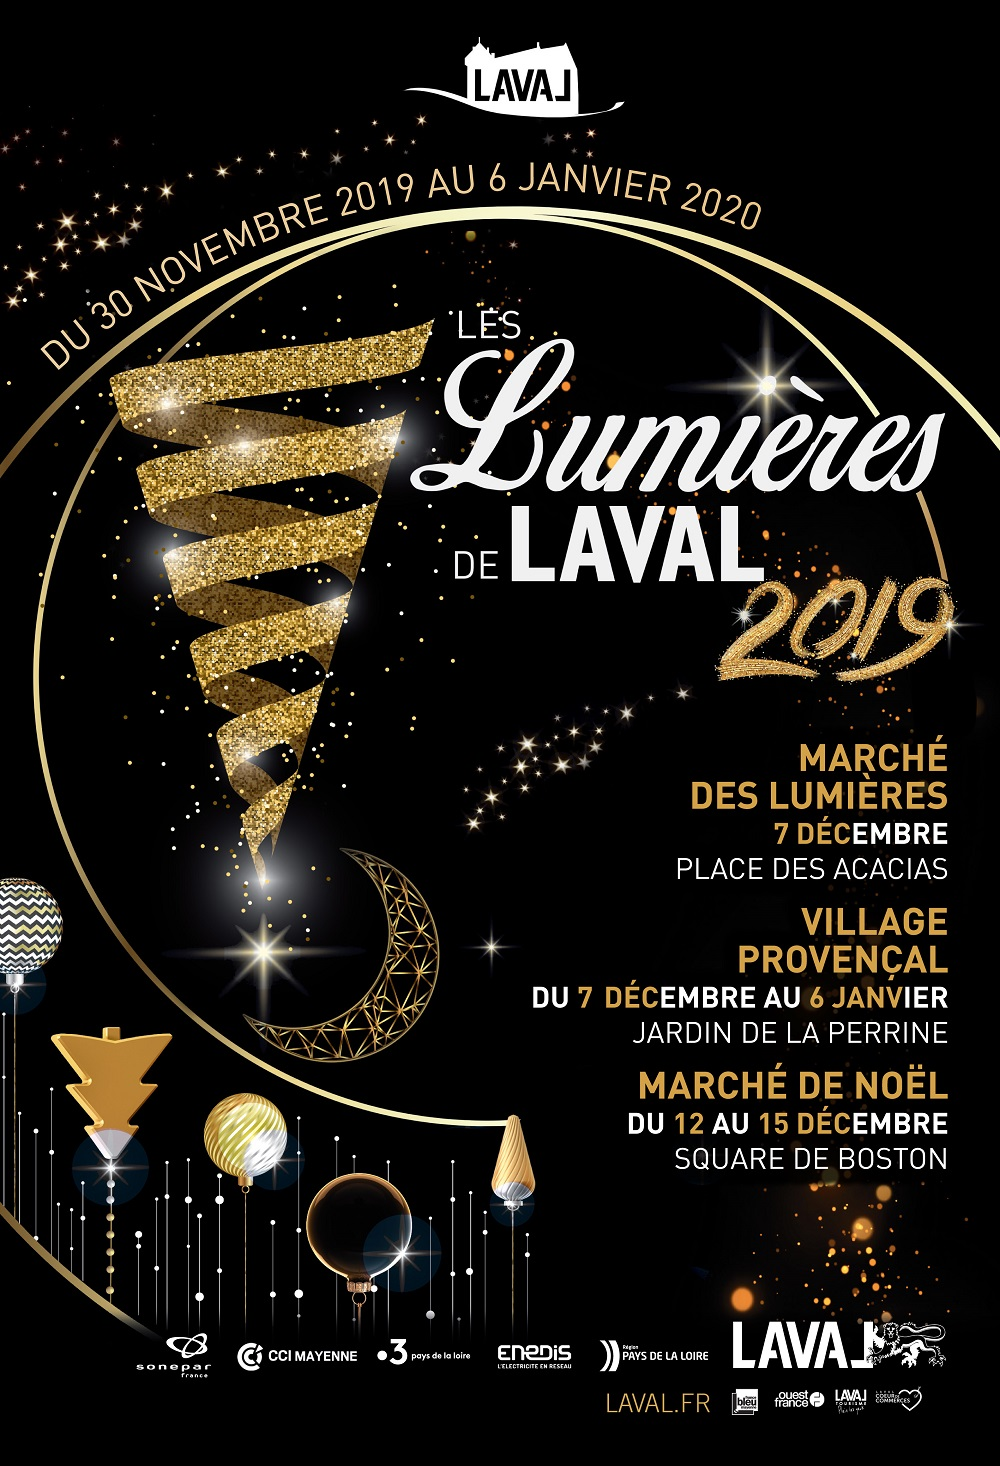 affiche noel laval 2019 2